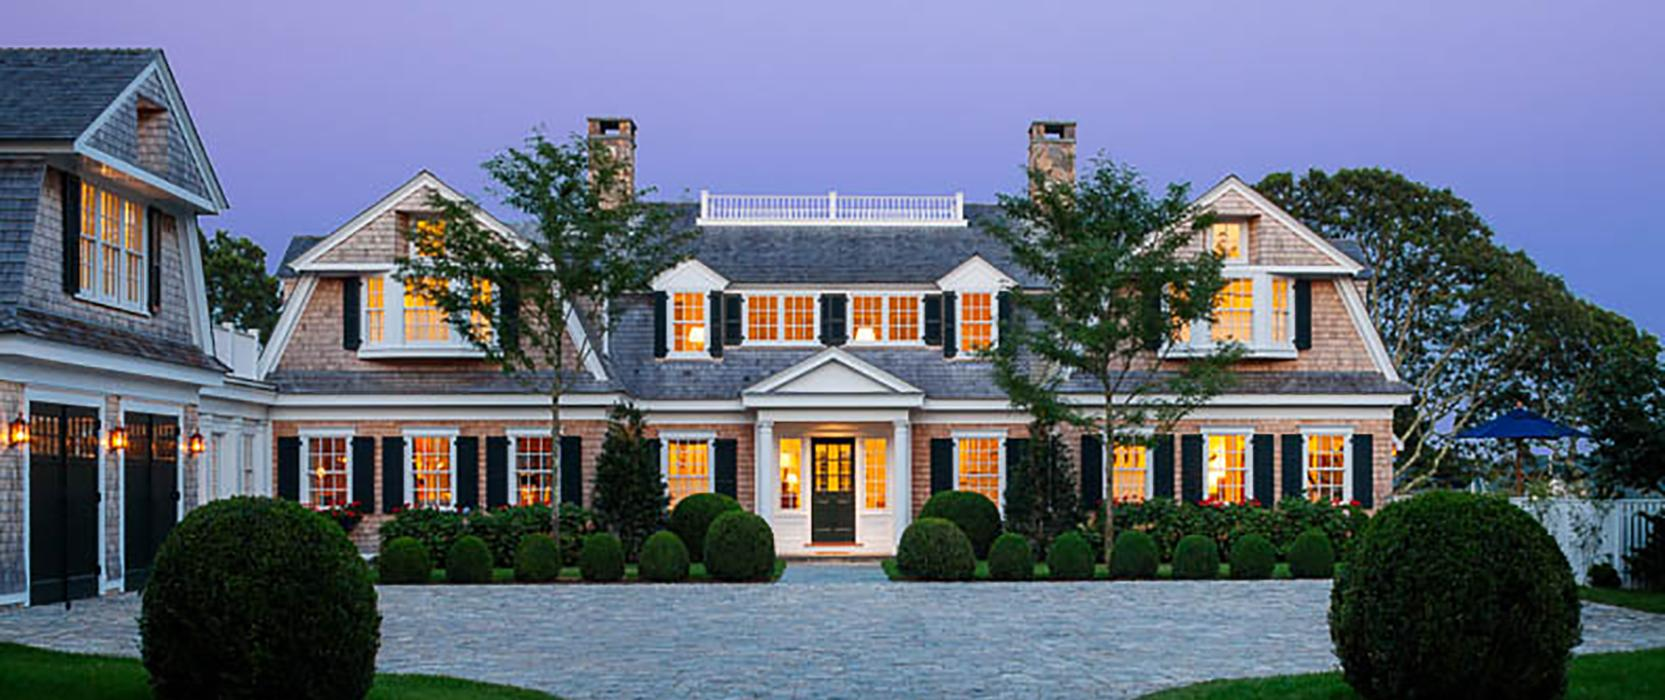 High-end custom builders Cape Cod